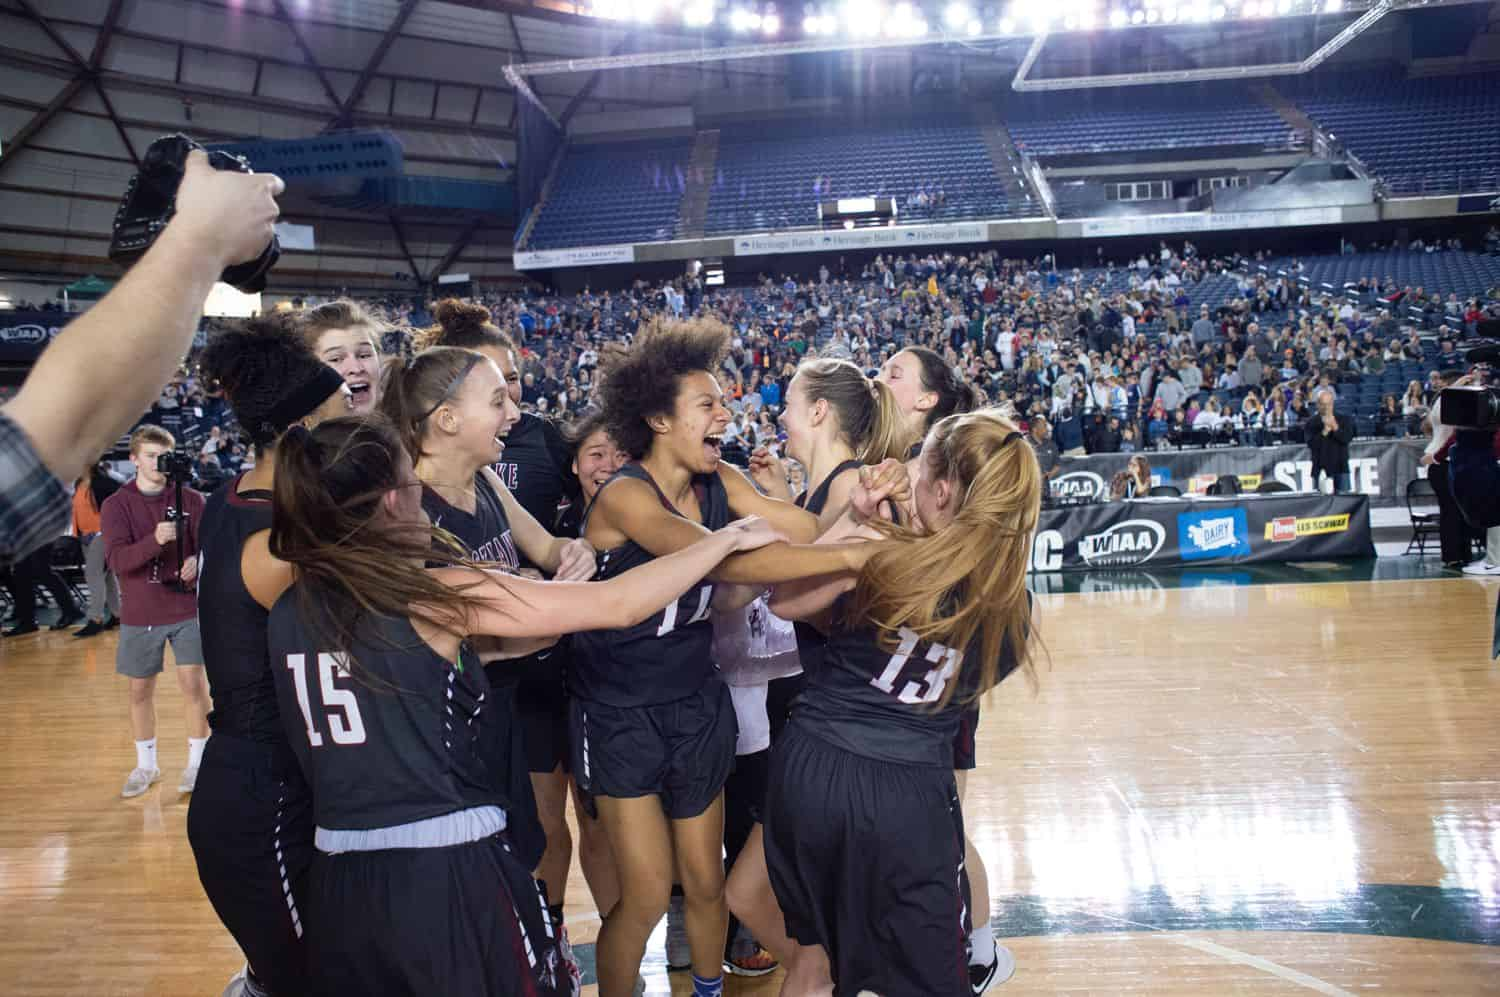 A group of high school girl basketball players celebrate their win on the court